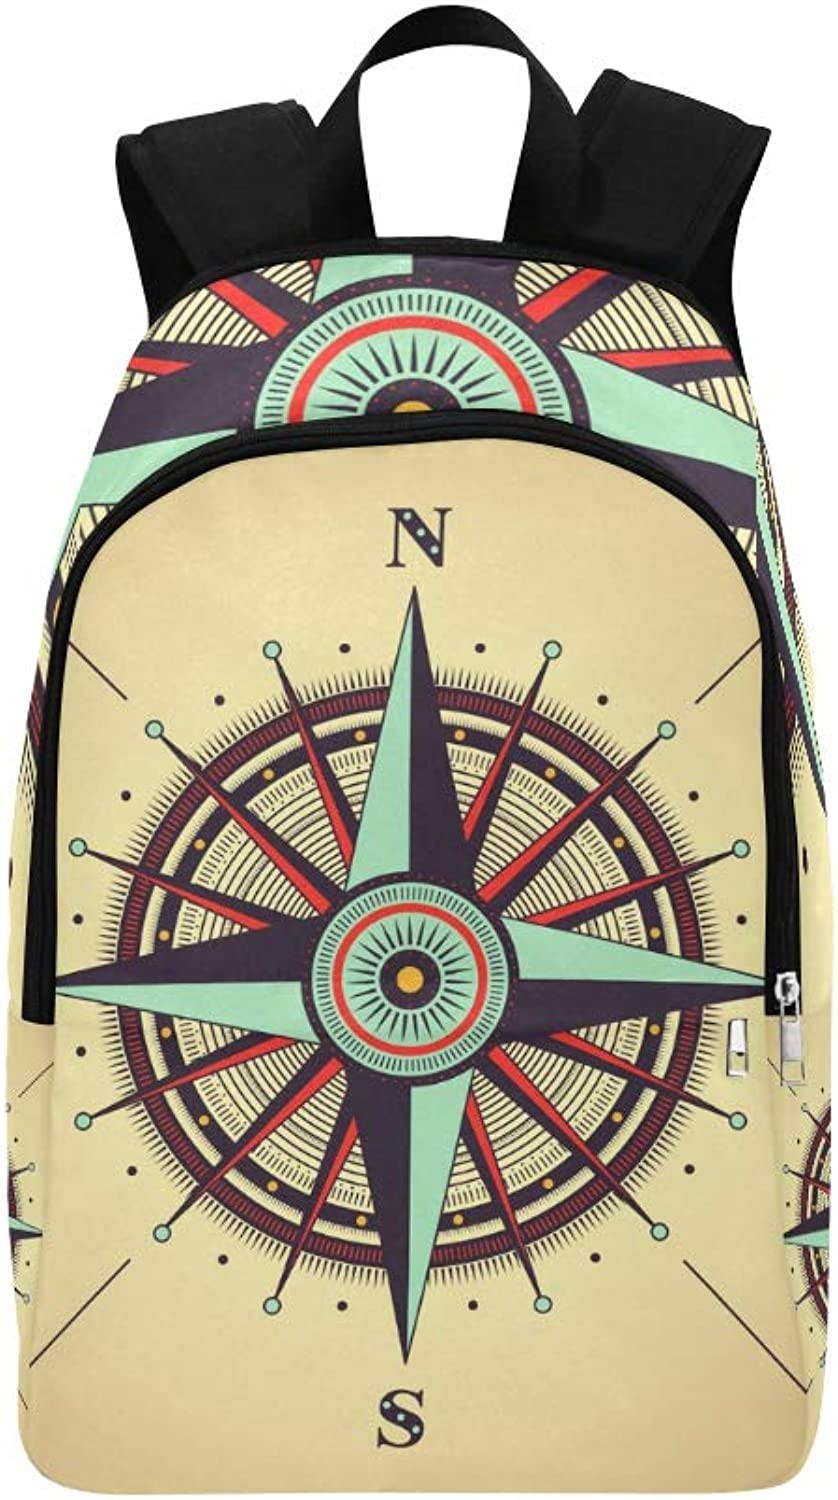 Retro Compass Compass Casual Daypack Travel Bag College School Backpack for Mens and Women